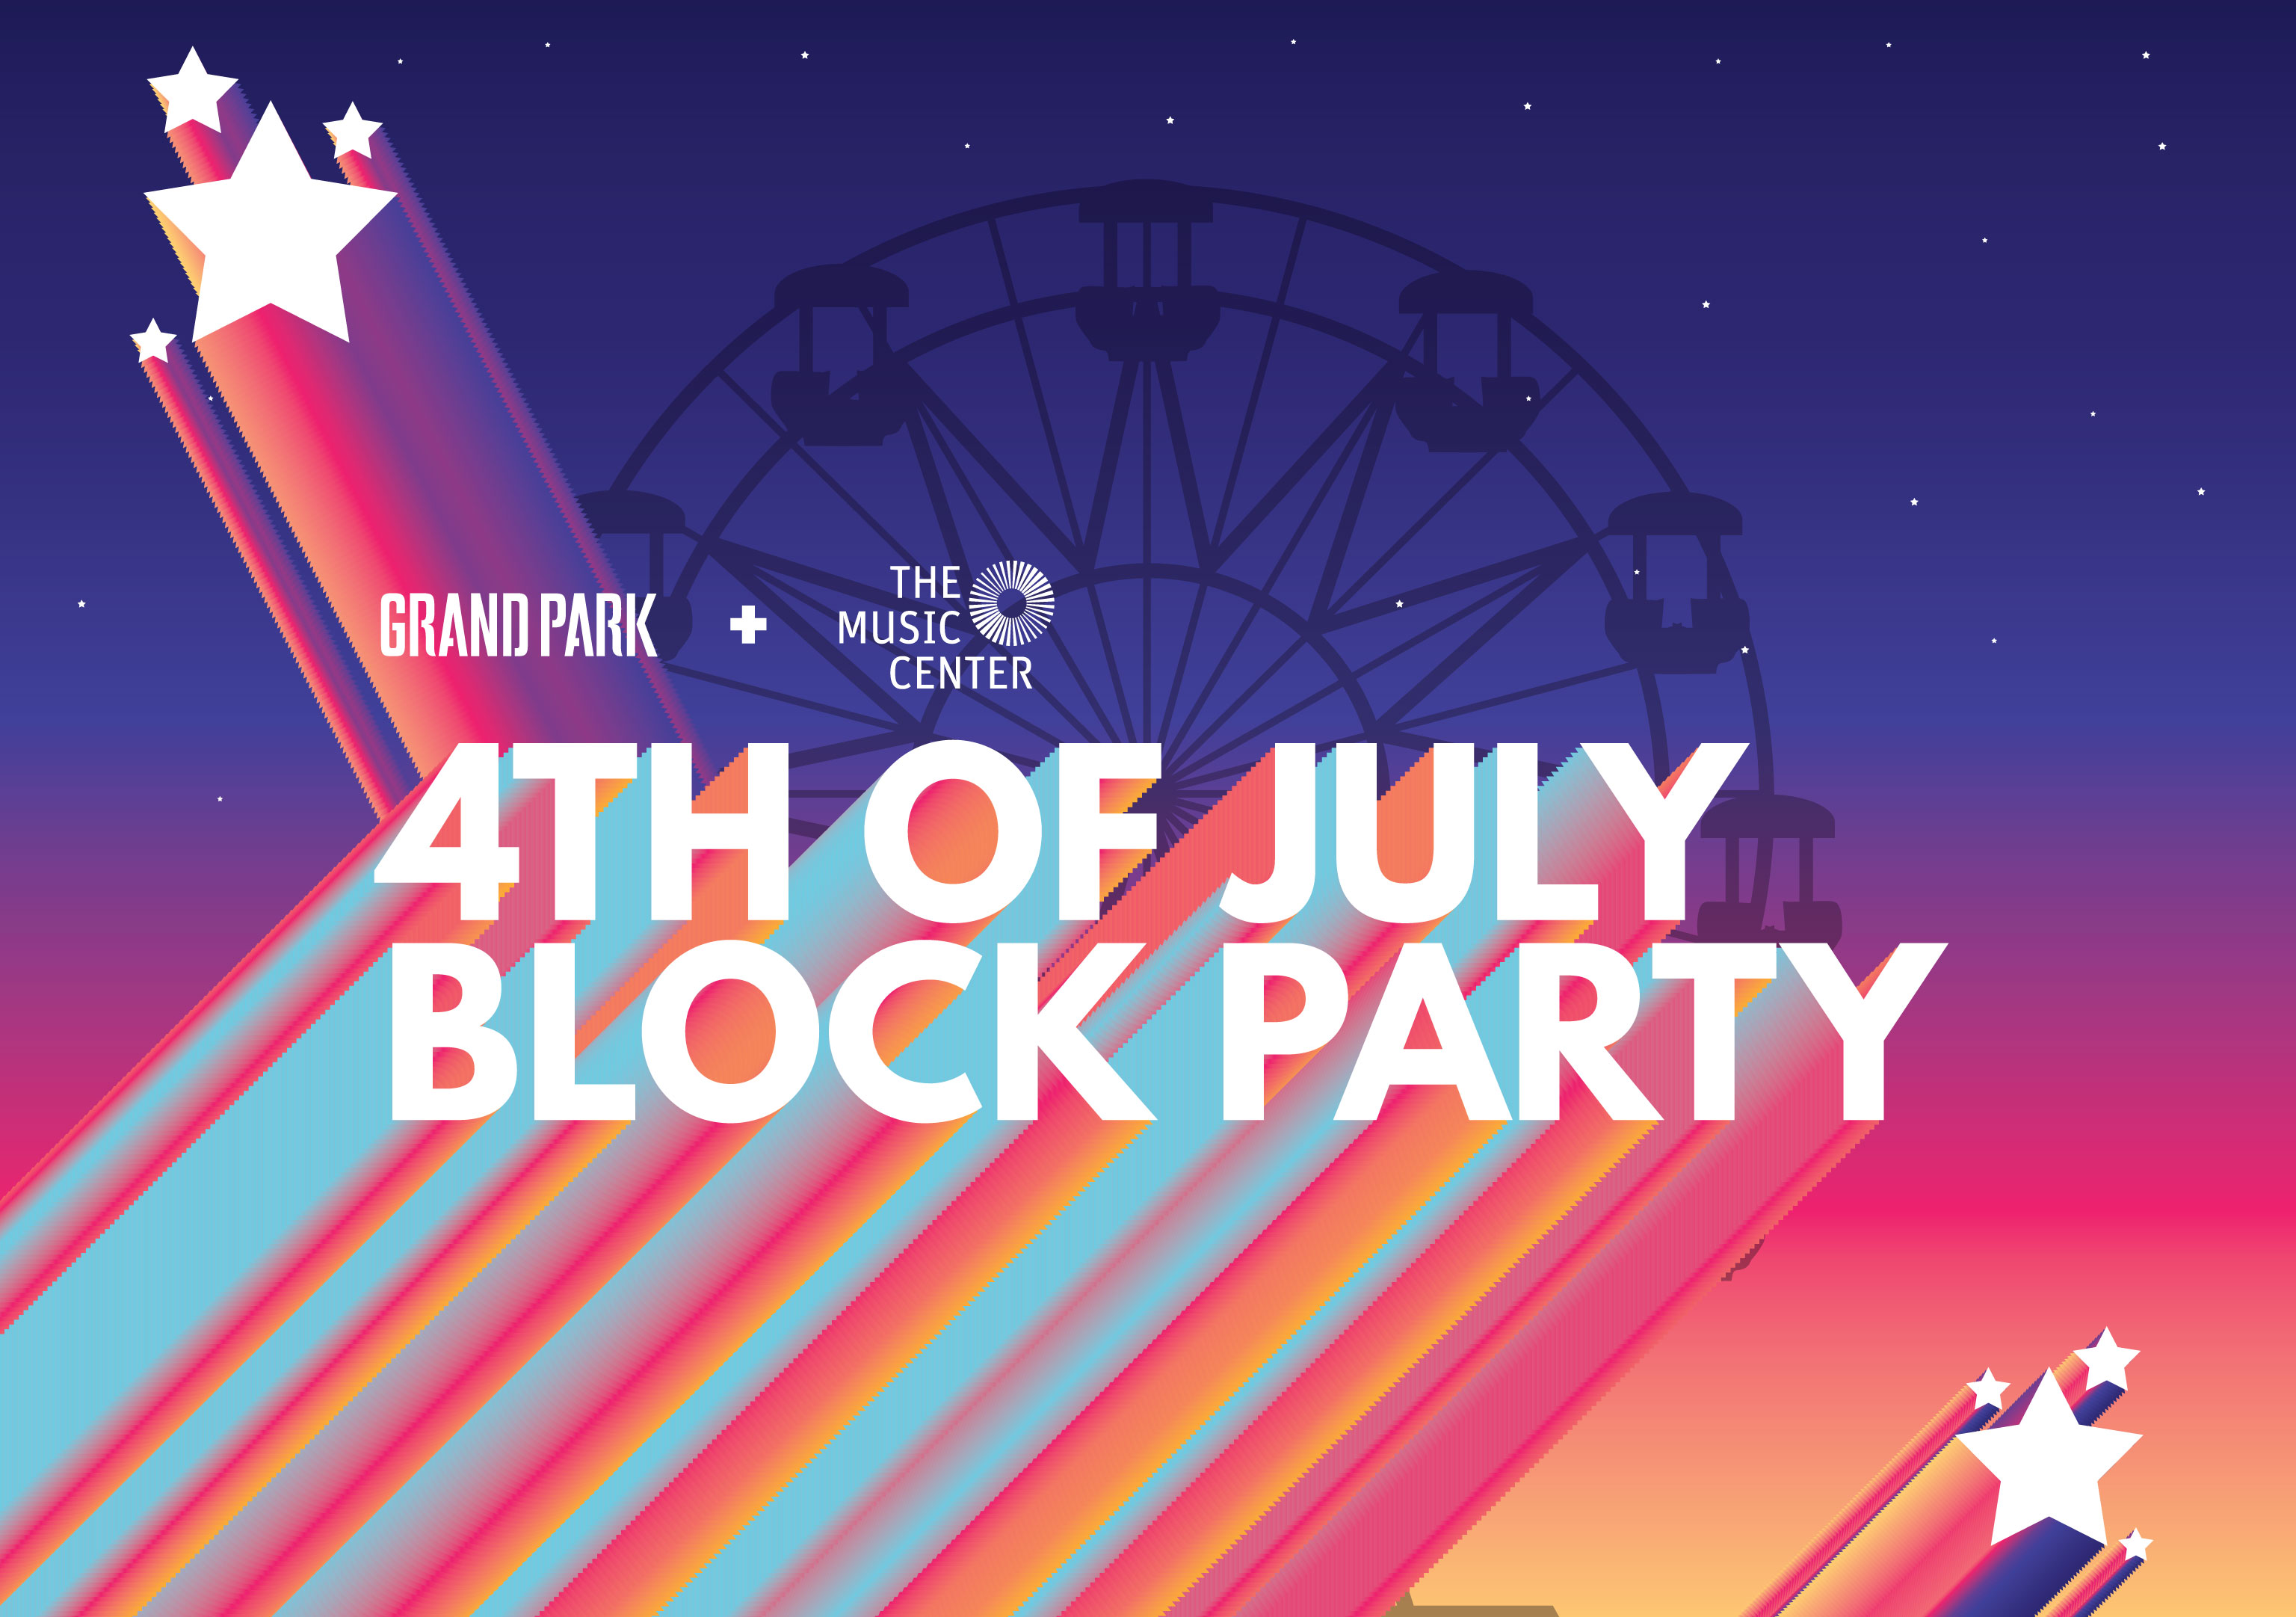 4th Of July Block Party, 2019 / Grand Park + The Music Center